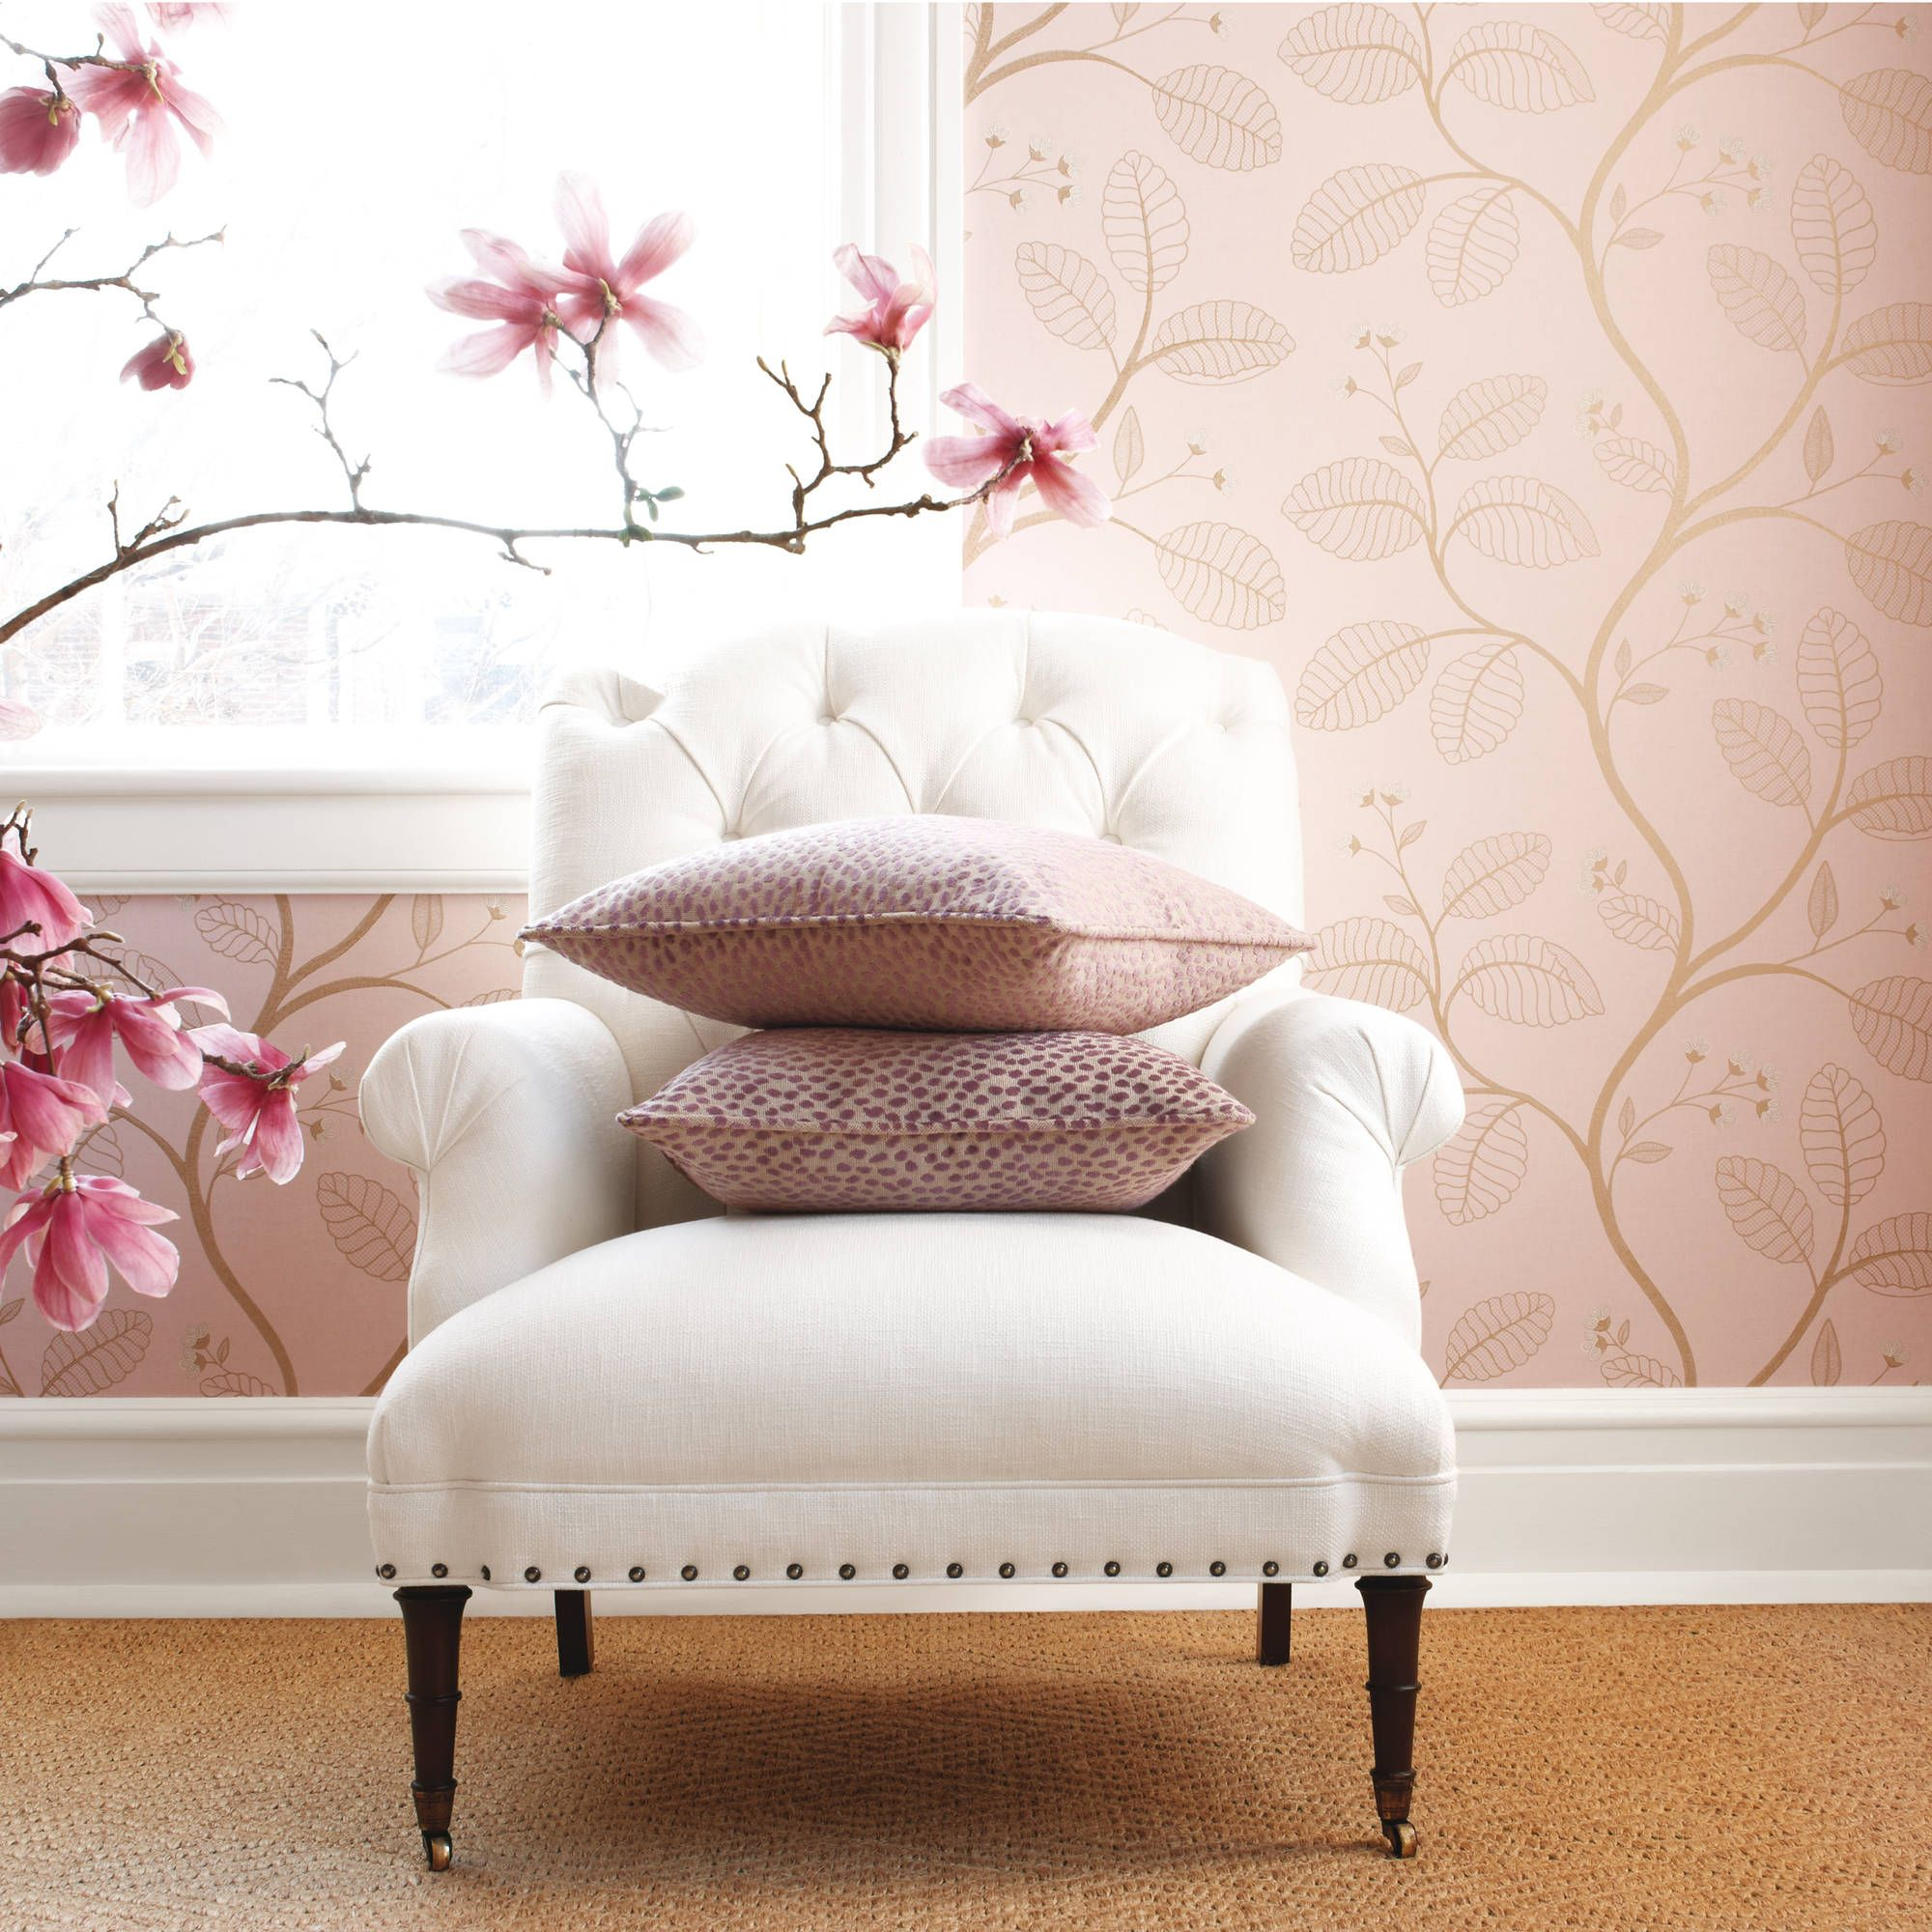 Celia Vine from Lyric Collection Decor, Anna french